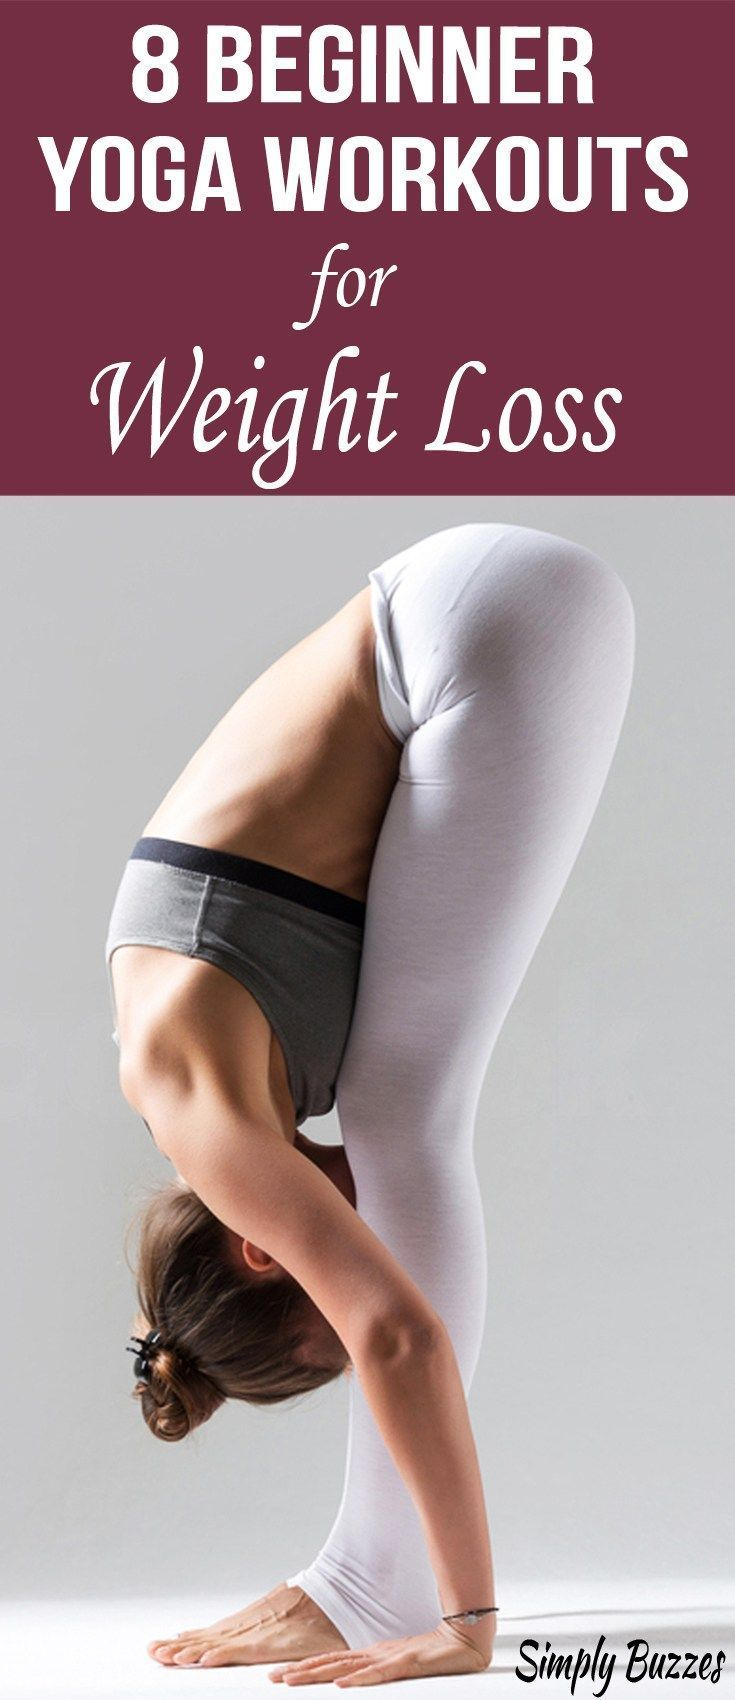 8 Yoga Workouts For Beginners To Lose Weight That Everyone Can Do It Very Easily...